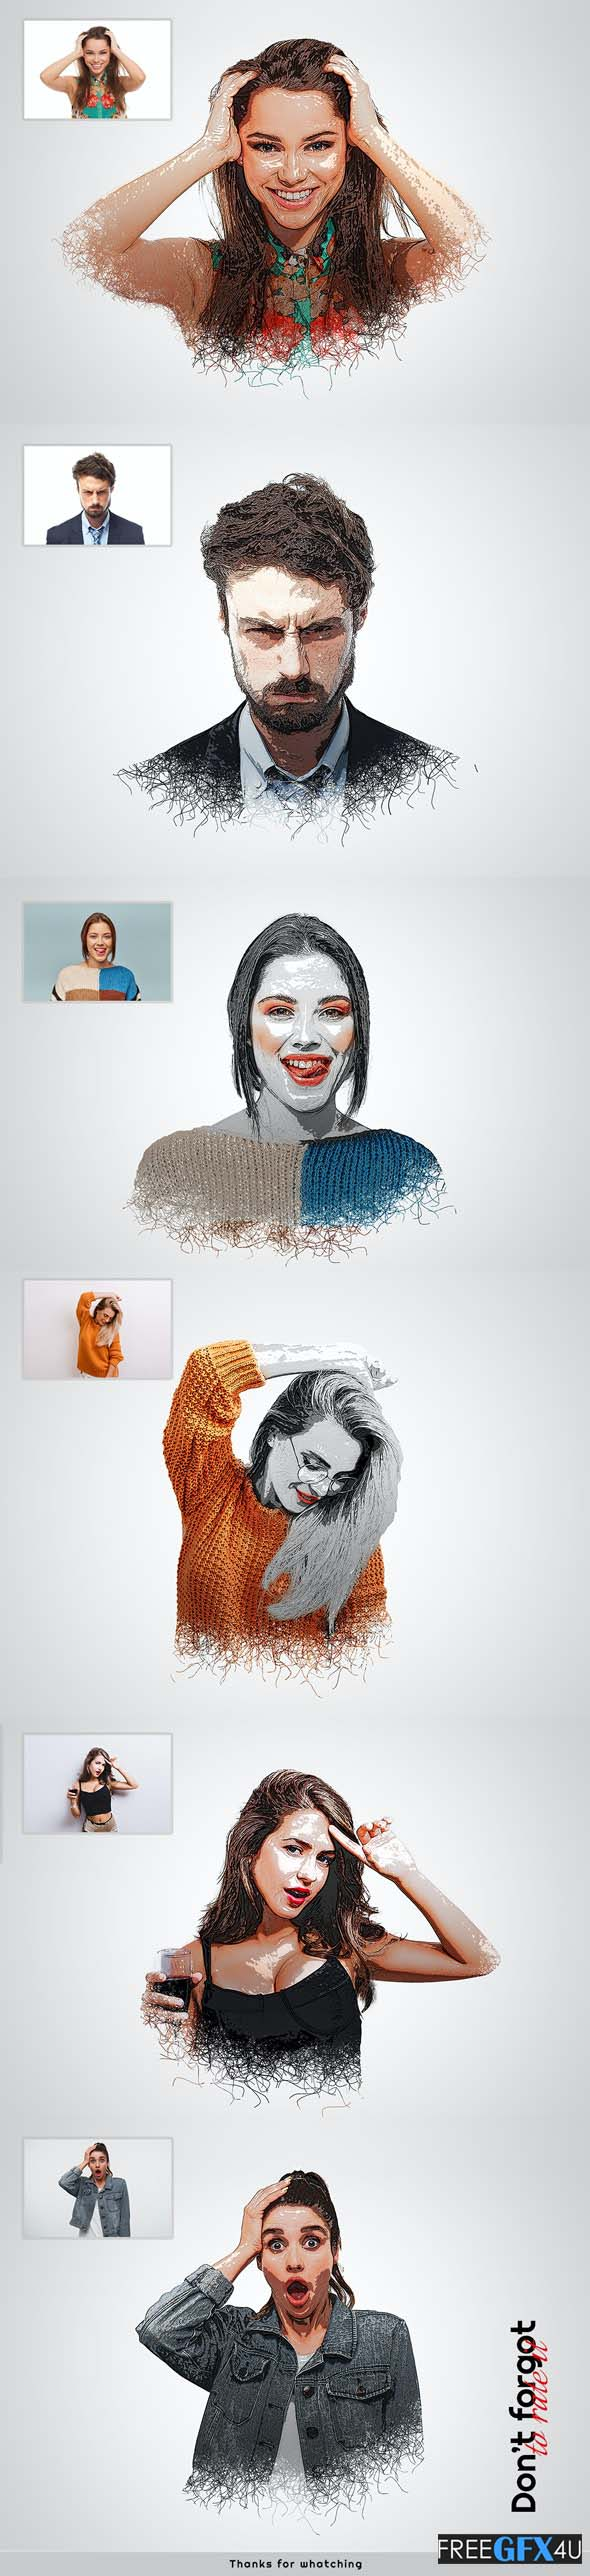 Cartoon Effects Photoshop Action